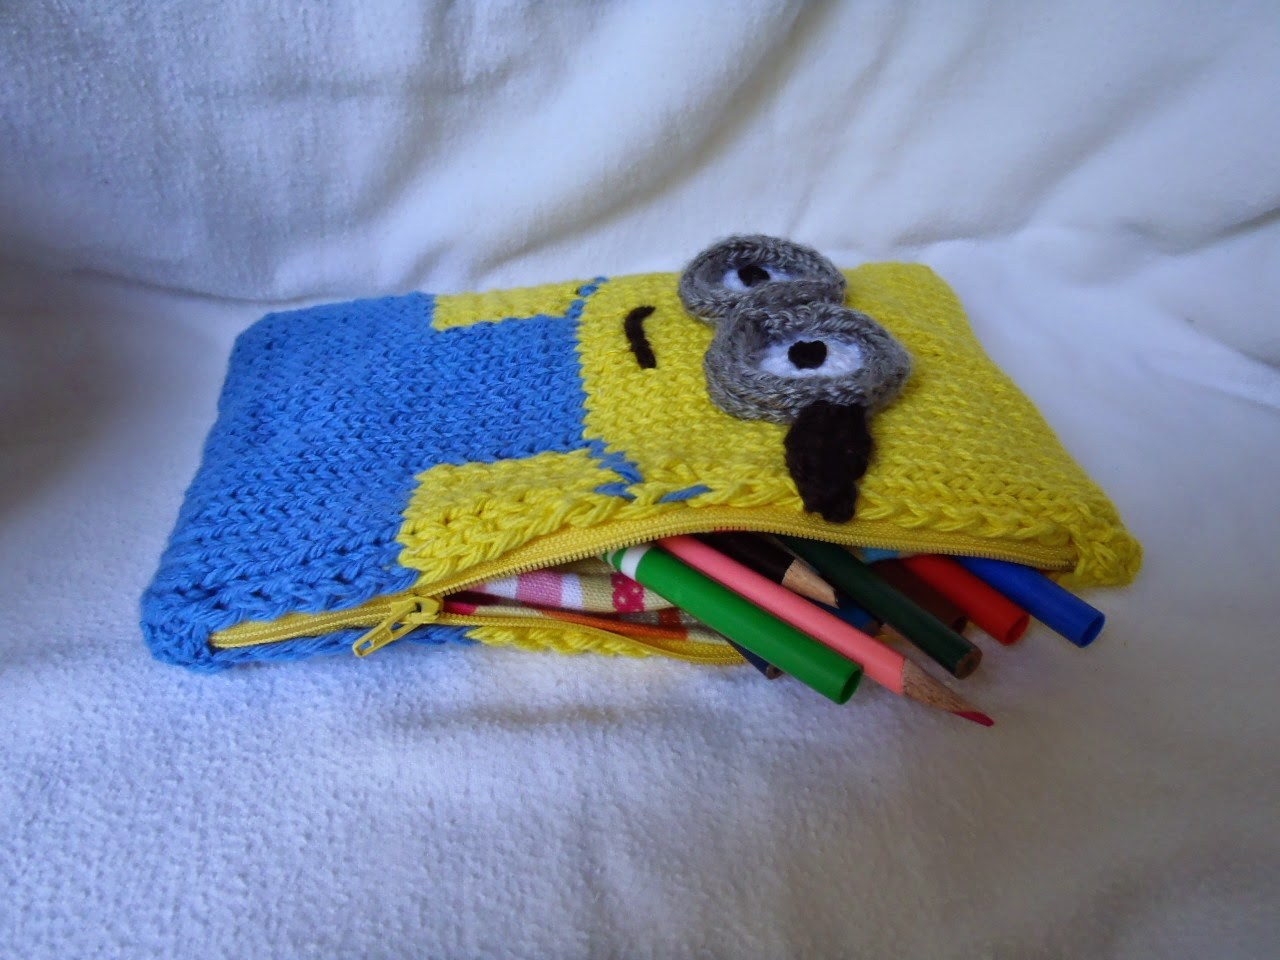 Knitting Patterns For Minion Hats Oh Those Minions Free Patterns To Knit Grandmothers Pattern Book